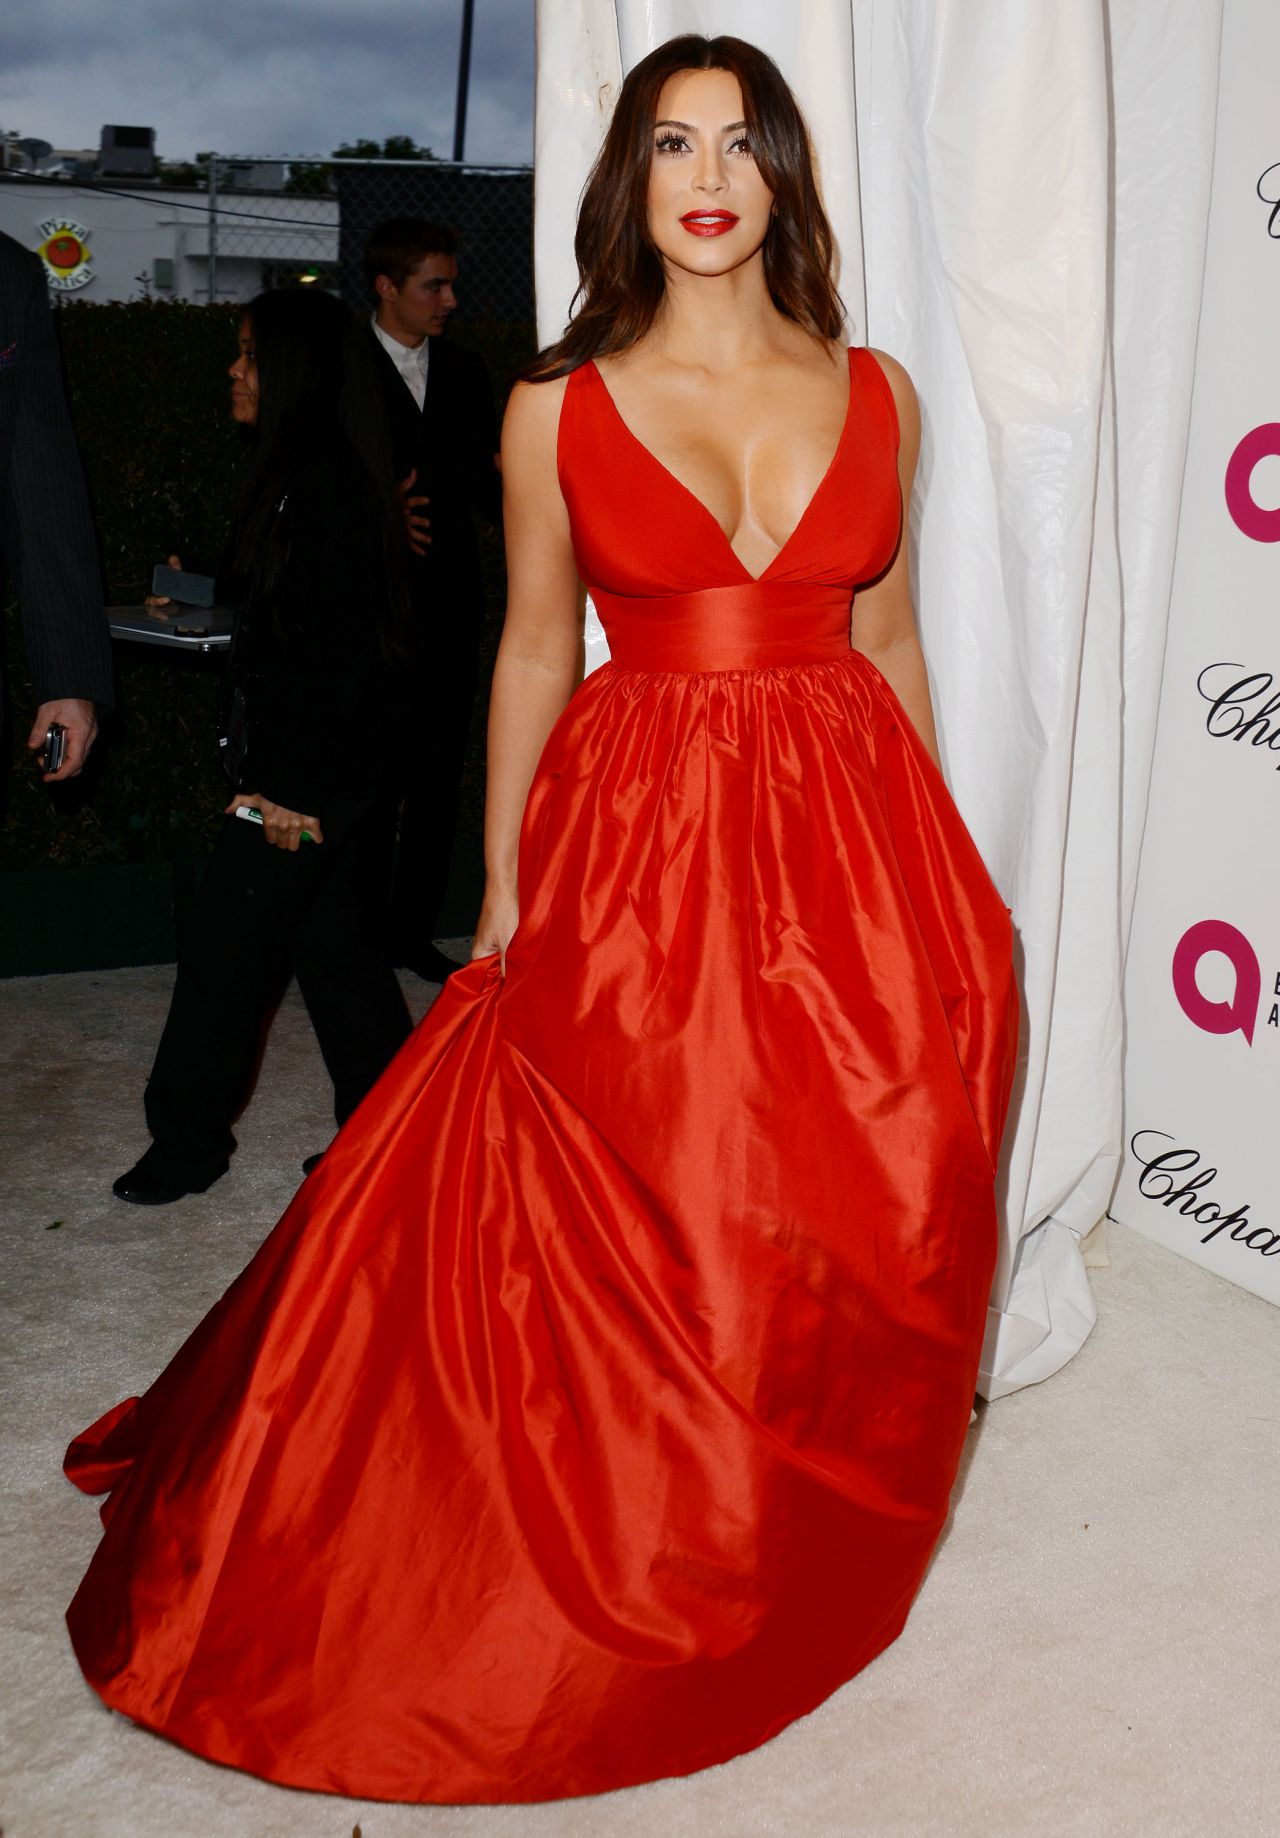 Kim kardashian in a red dress